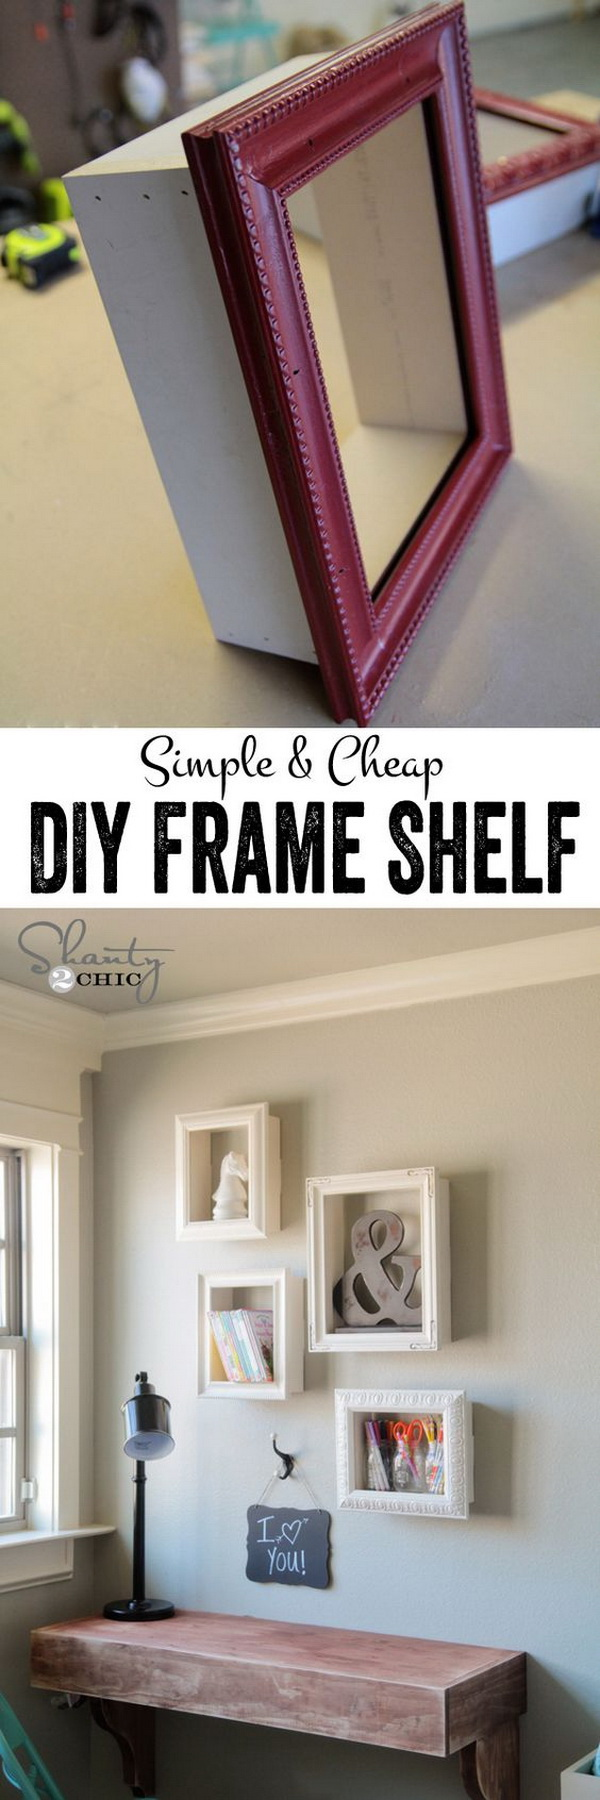 DIY Display Frame Shelves. Make DIY display shelves using cheap frames... So cute and easy!